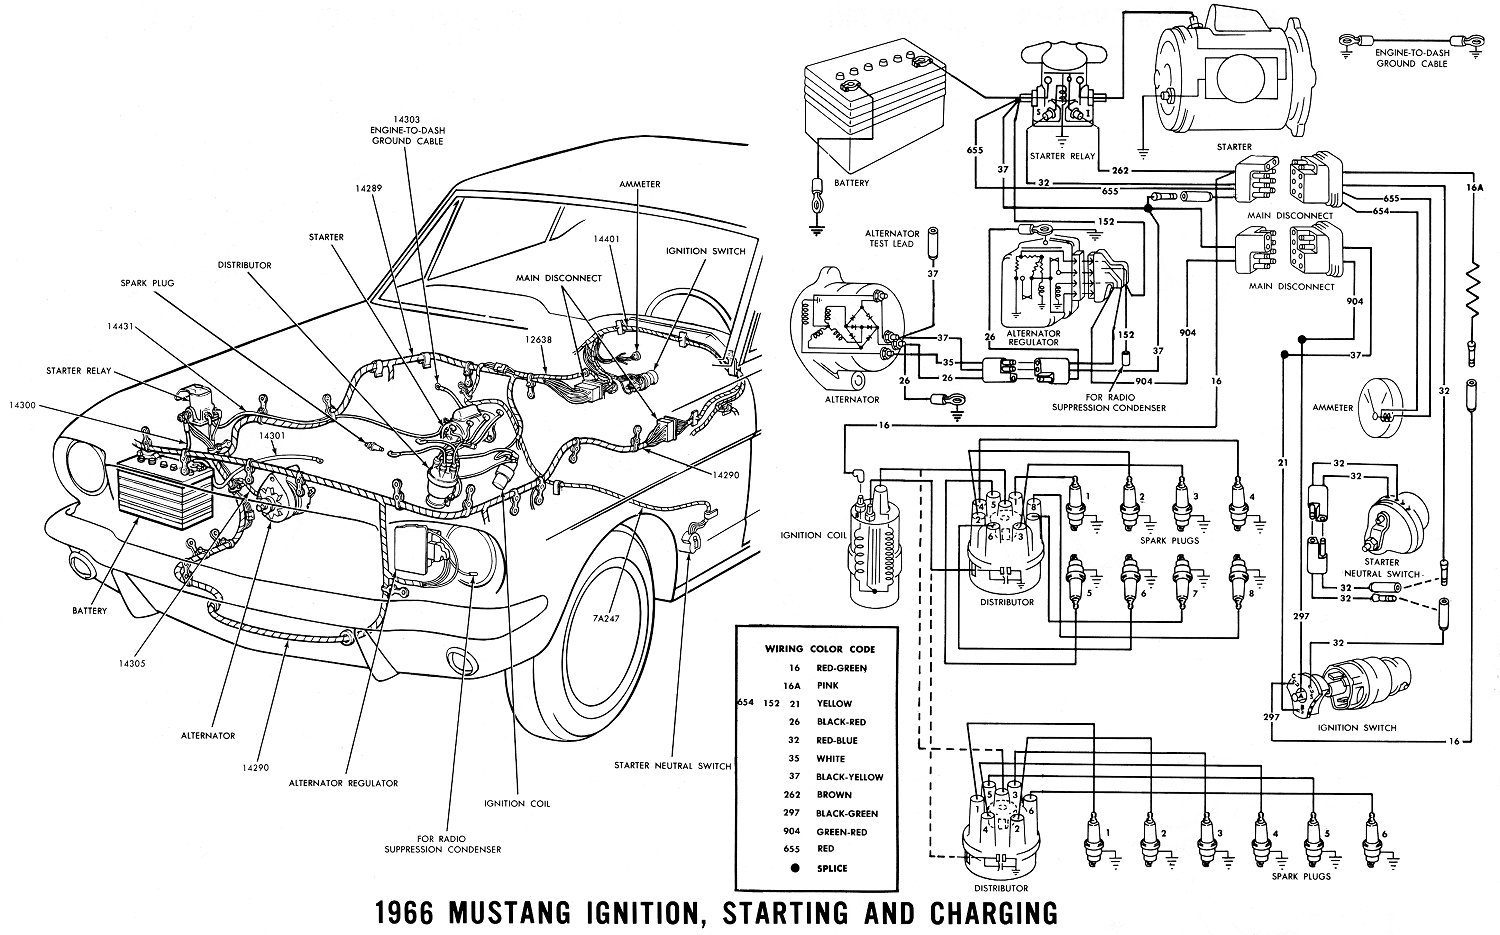 1971 mgb ignition wiring diagram wiring diagram 1971 Mustang Convertible Parts  1971 Camaro Motors 351 Cleveland Engine Horsepower Boss 429 Engine Specs